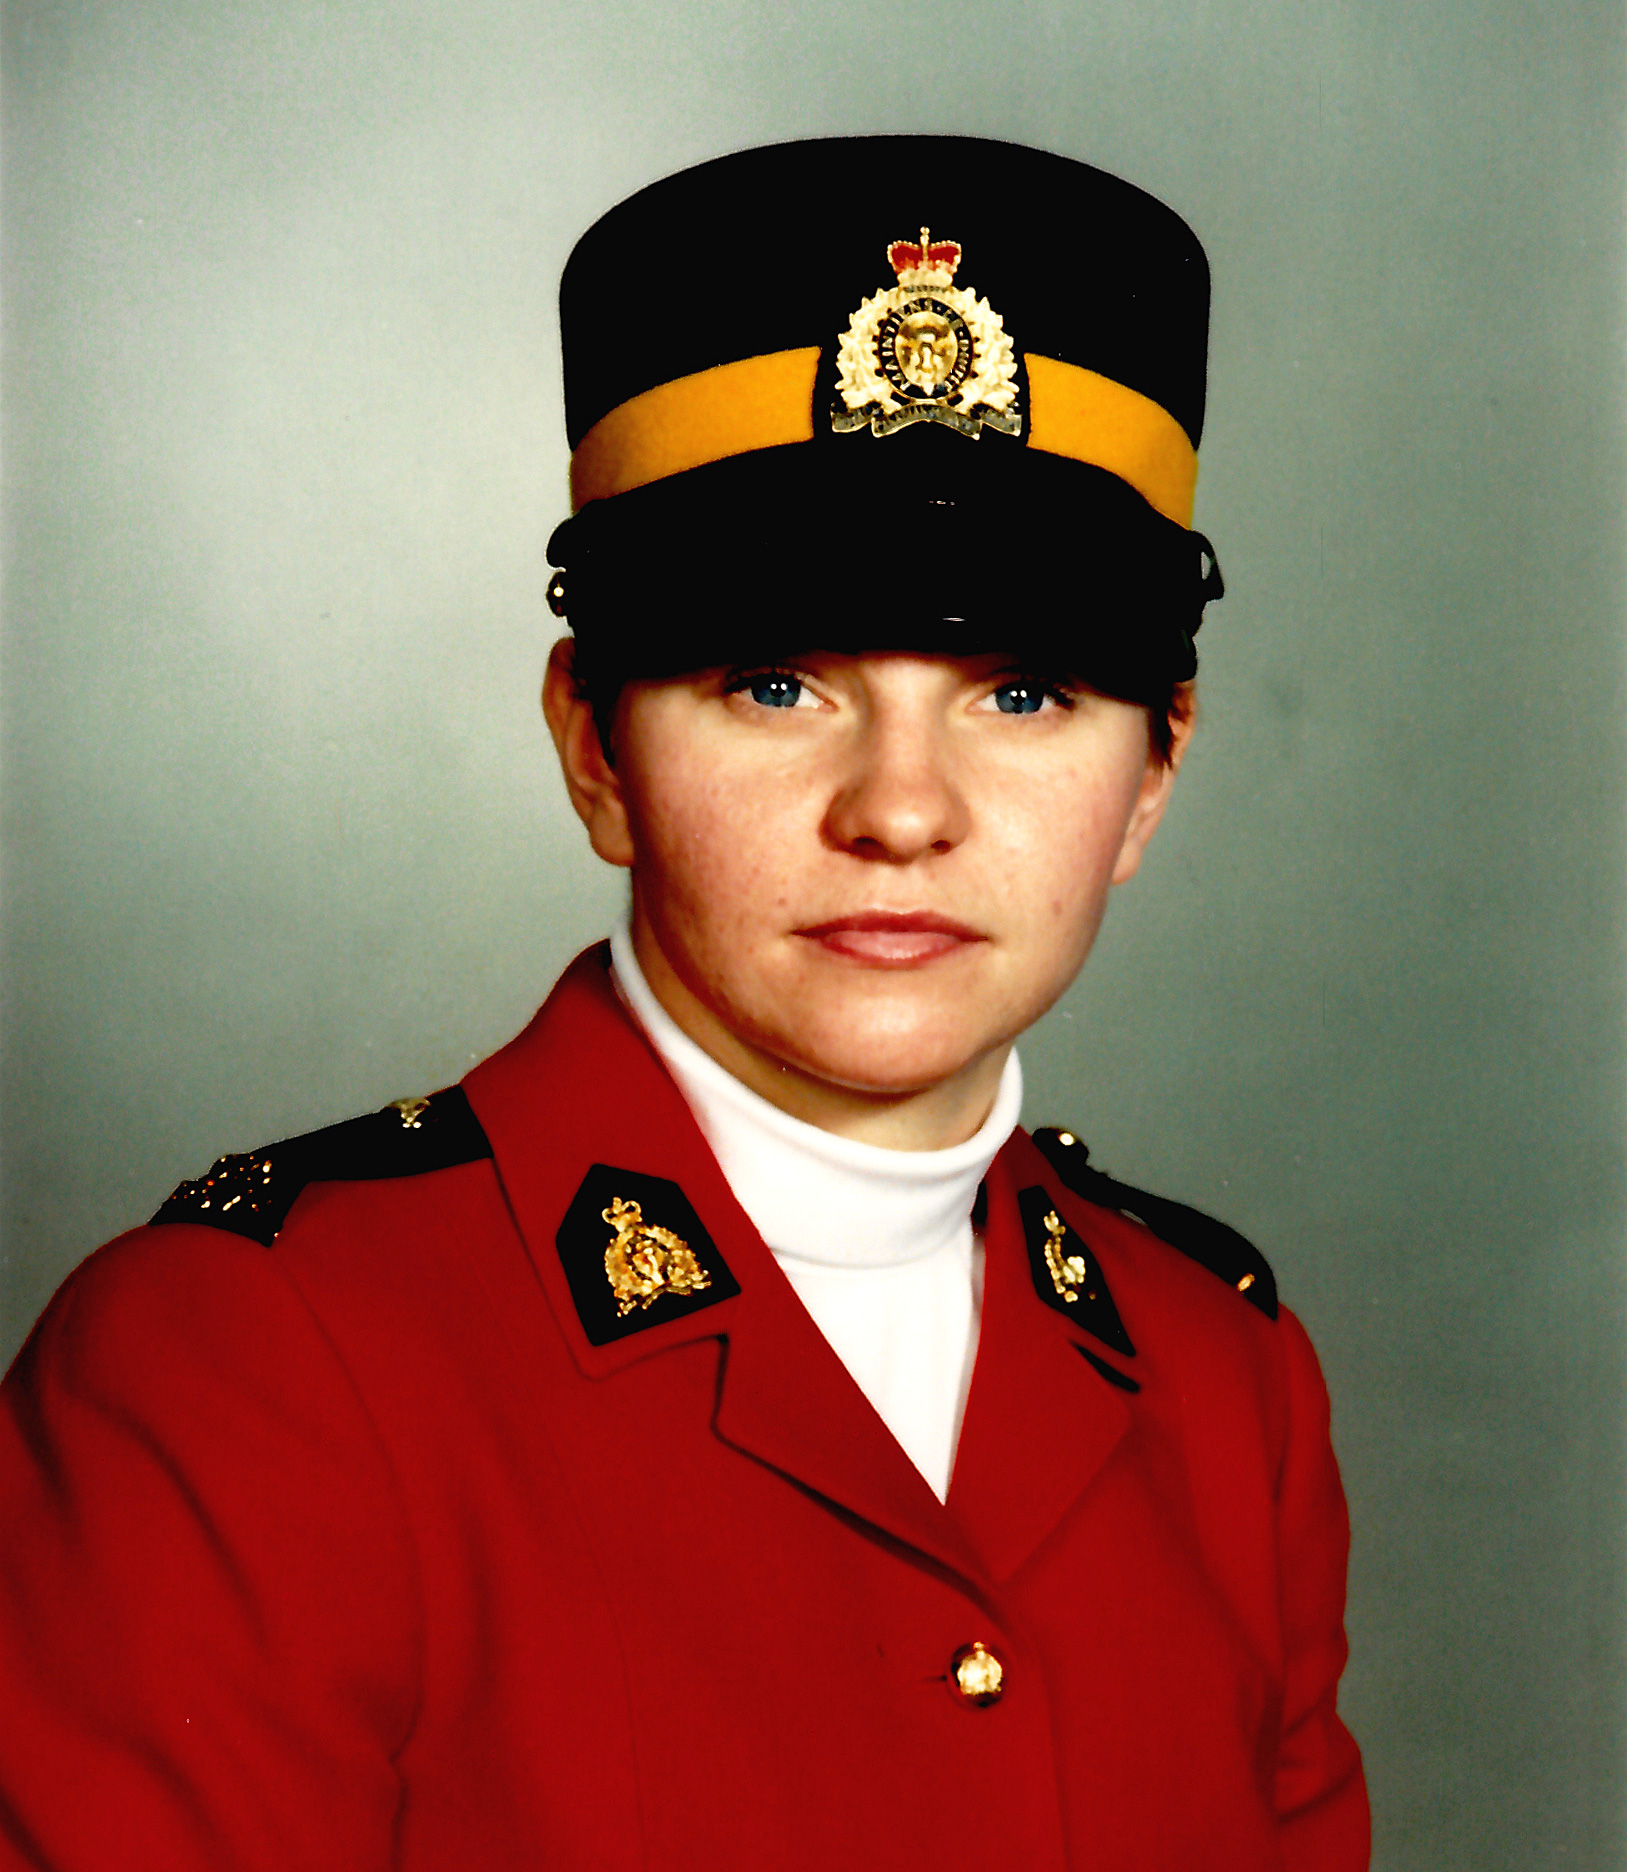 Constable Della Sonya Beyak– © Her Majesty the Queen in Right of Canada as represented by the Royal Canadian Mounted Police